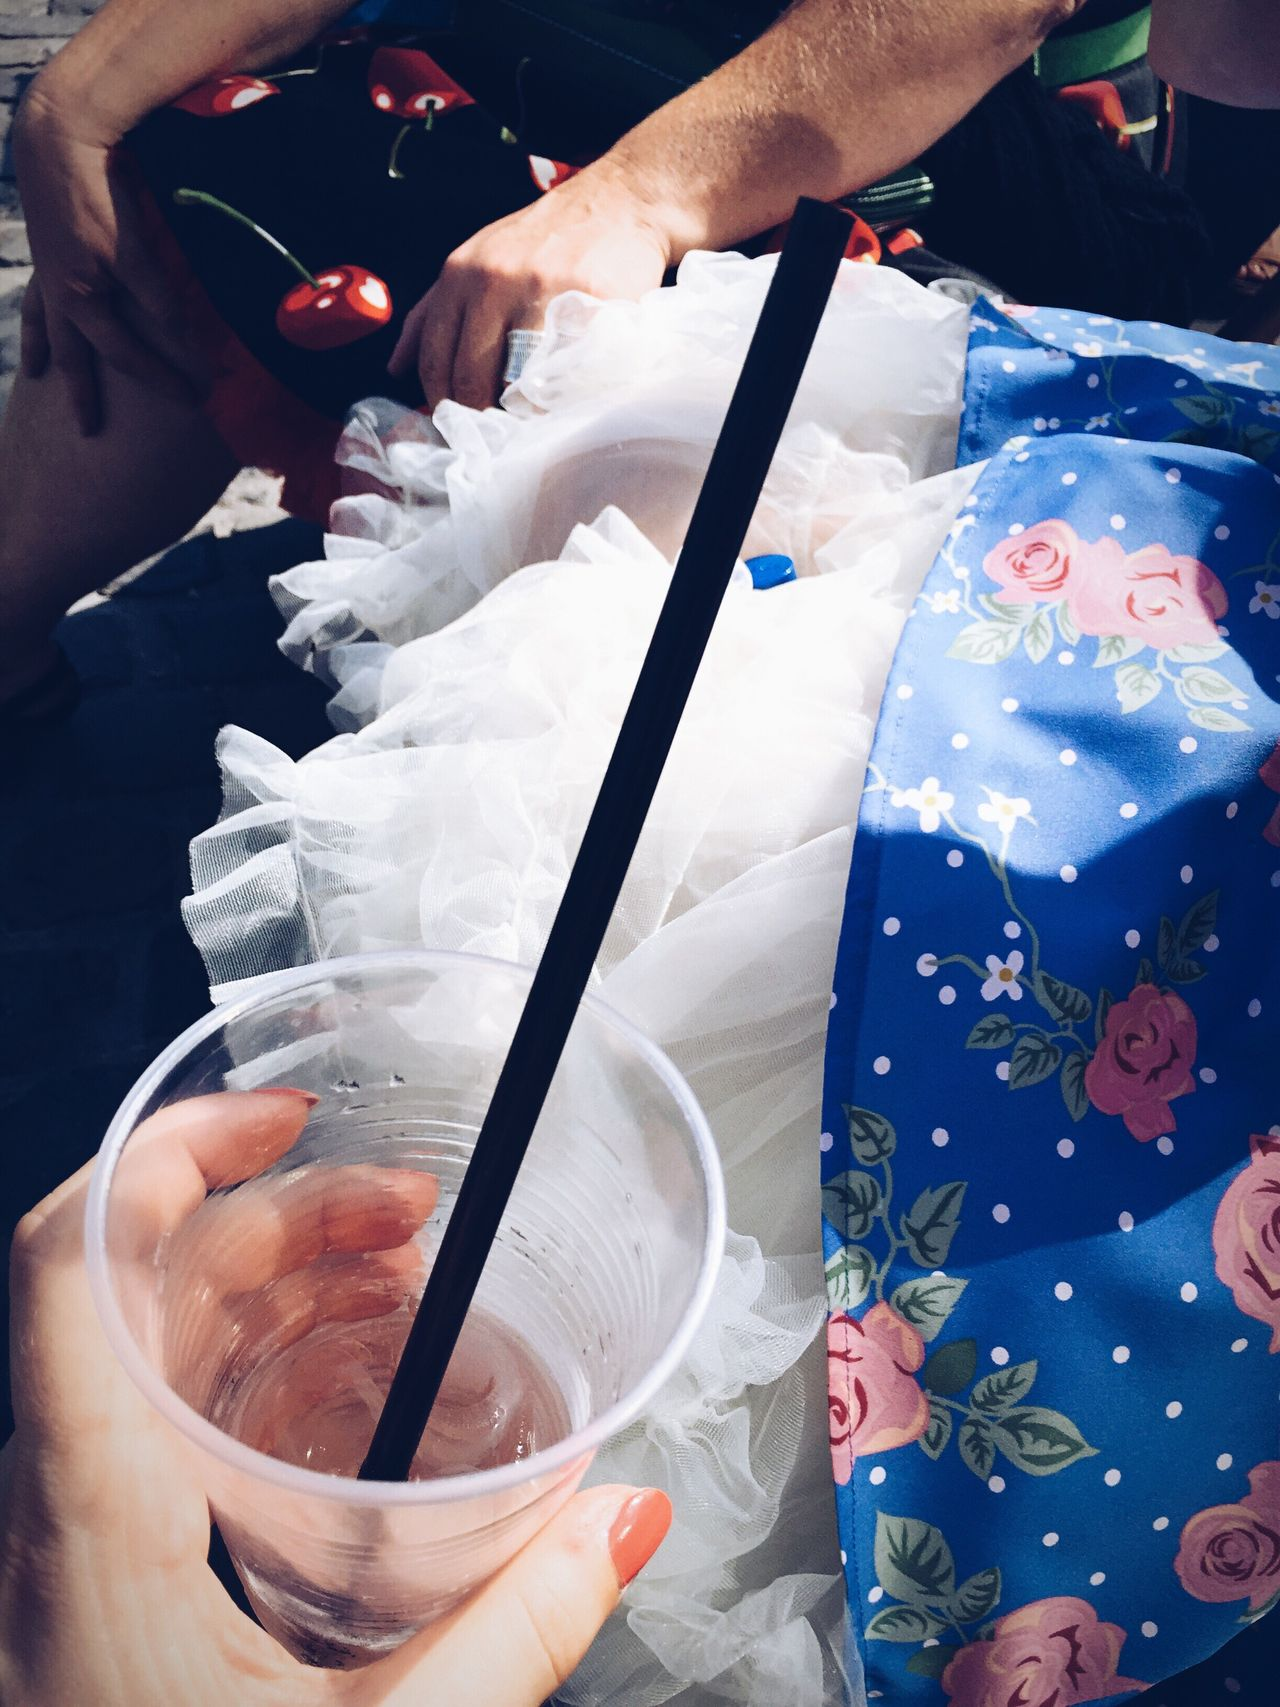 Women Around The World Celebration Party Dress Petticoat Human Hand Human Body Part High Angle View Real People People People Photography Lifestyles Adults Only Drink Multi Colored Enjoying Life